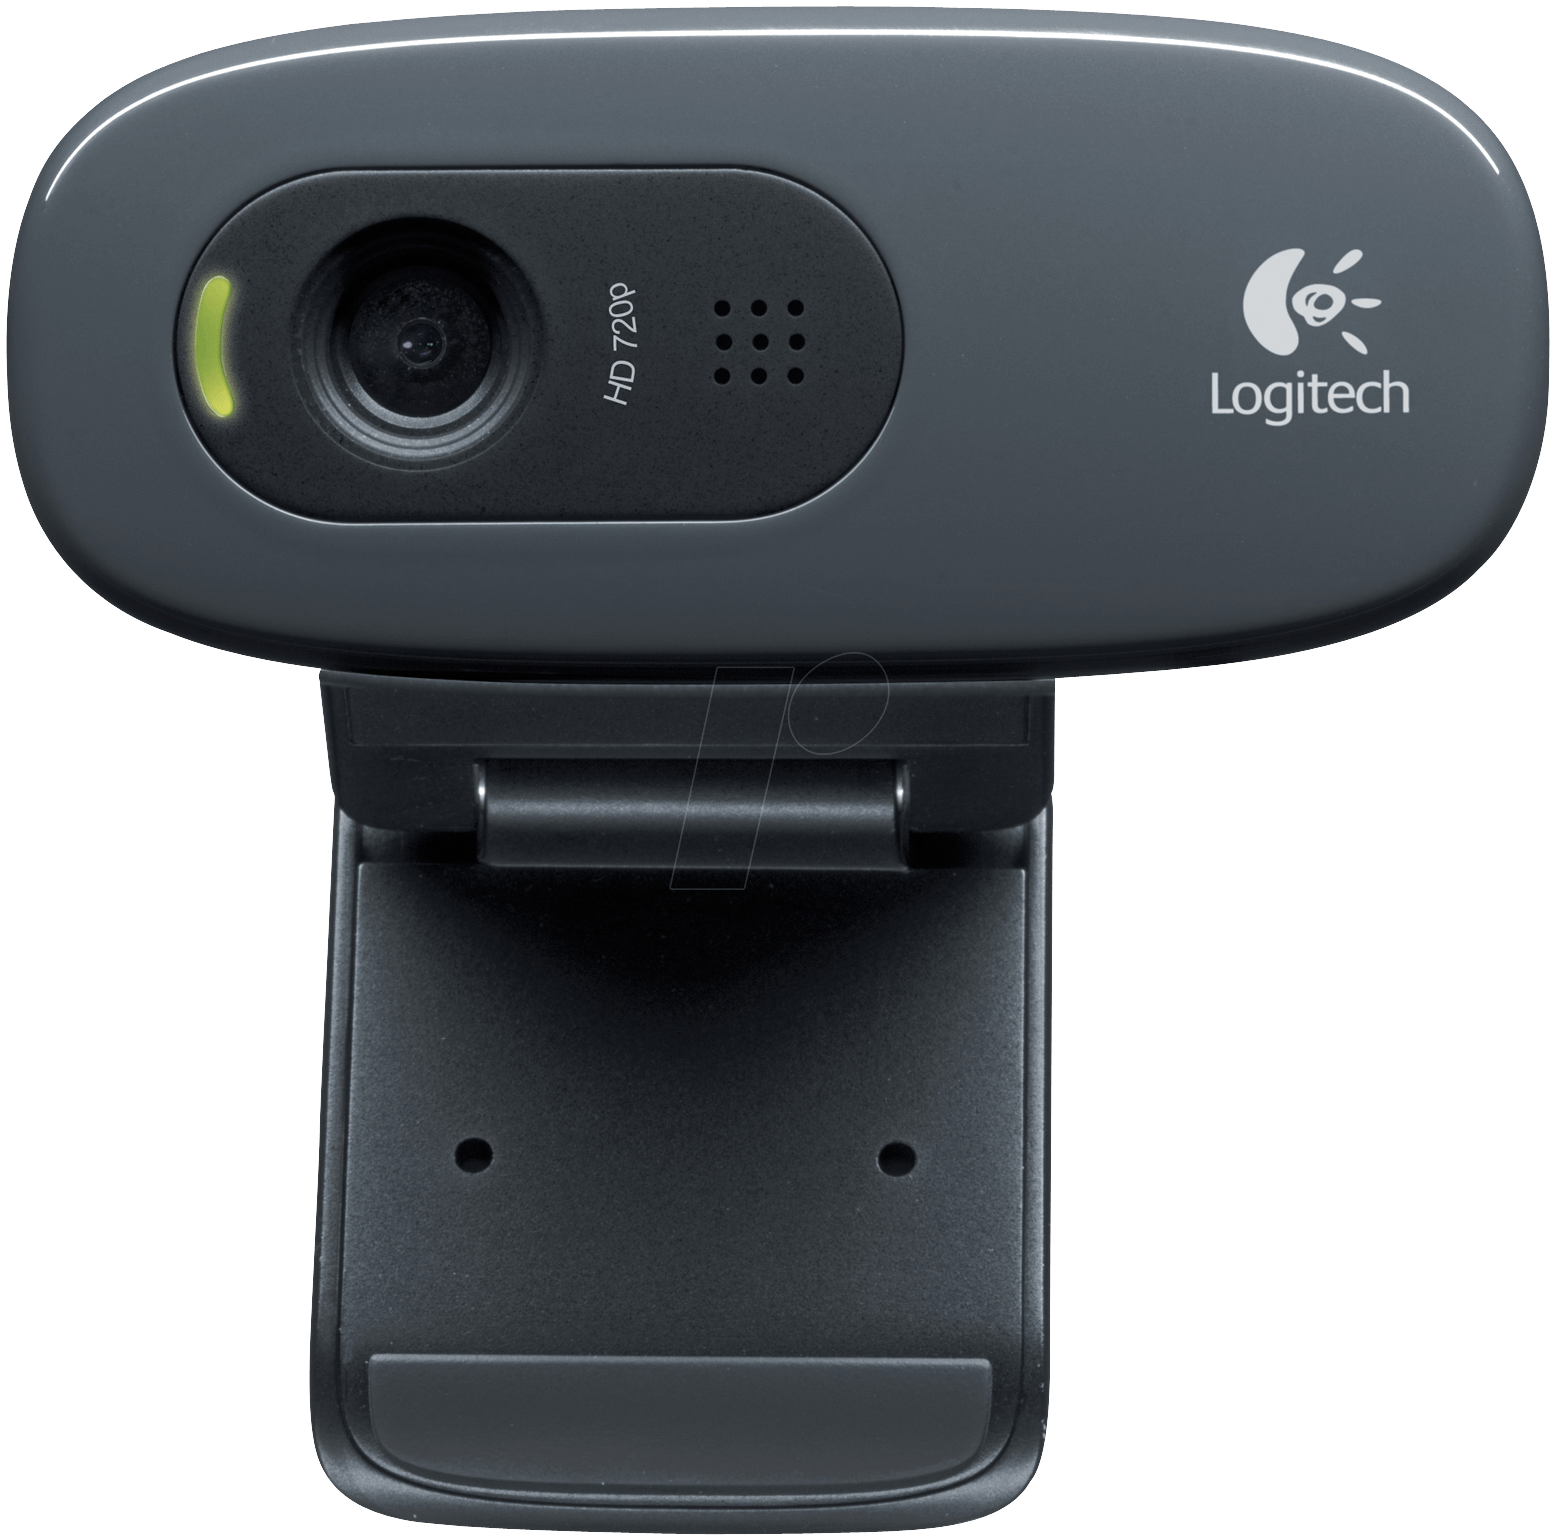 Logitech Webcam Drivers Free Download for Windows 10 - Driver Easy